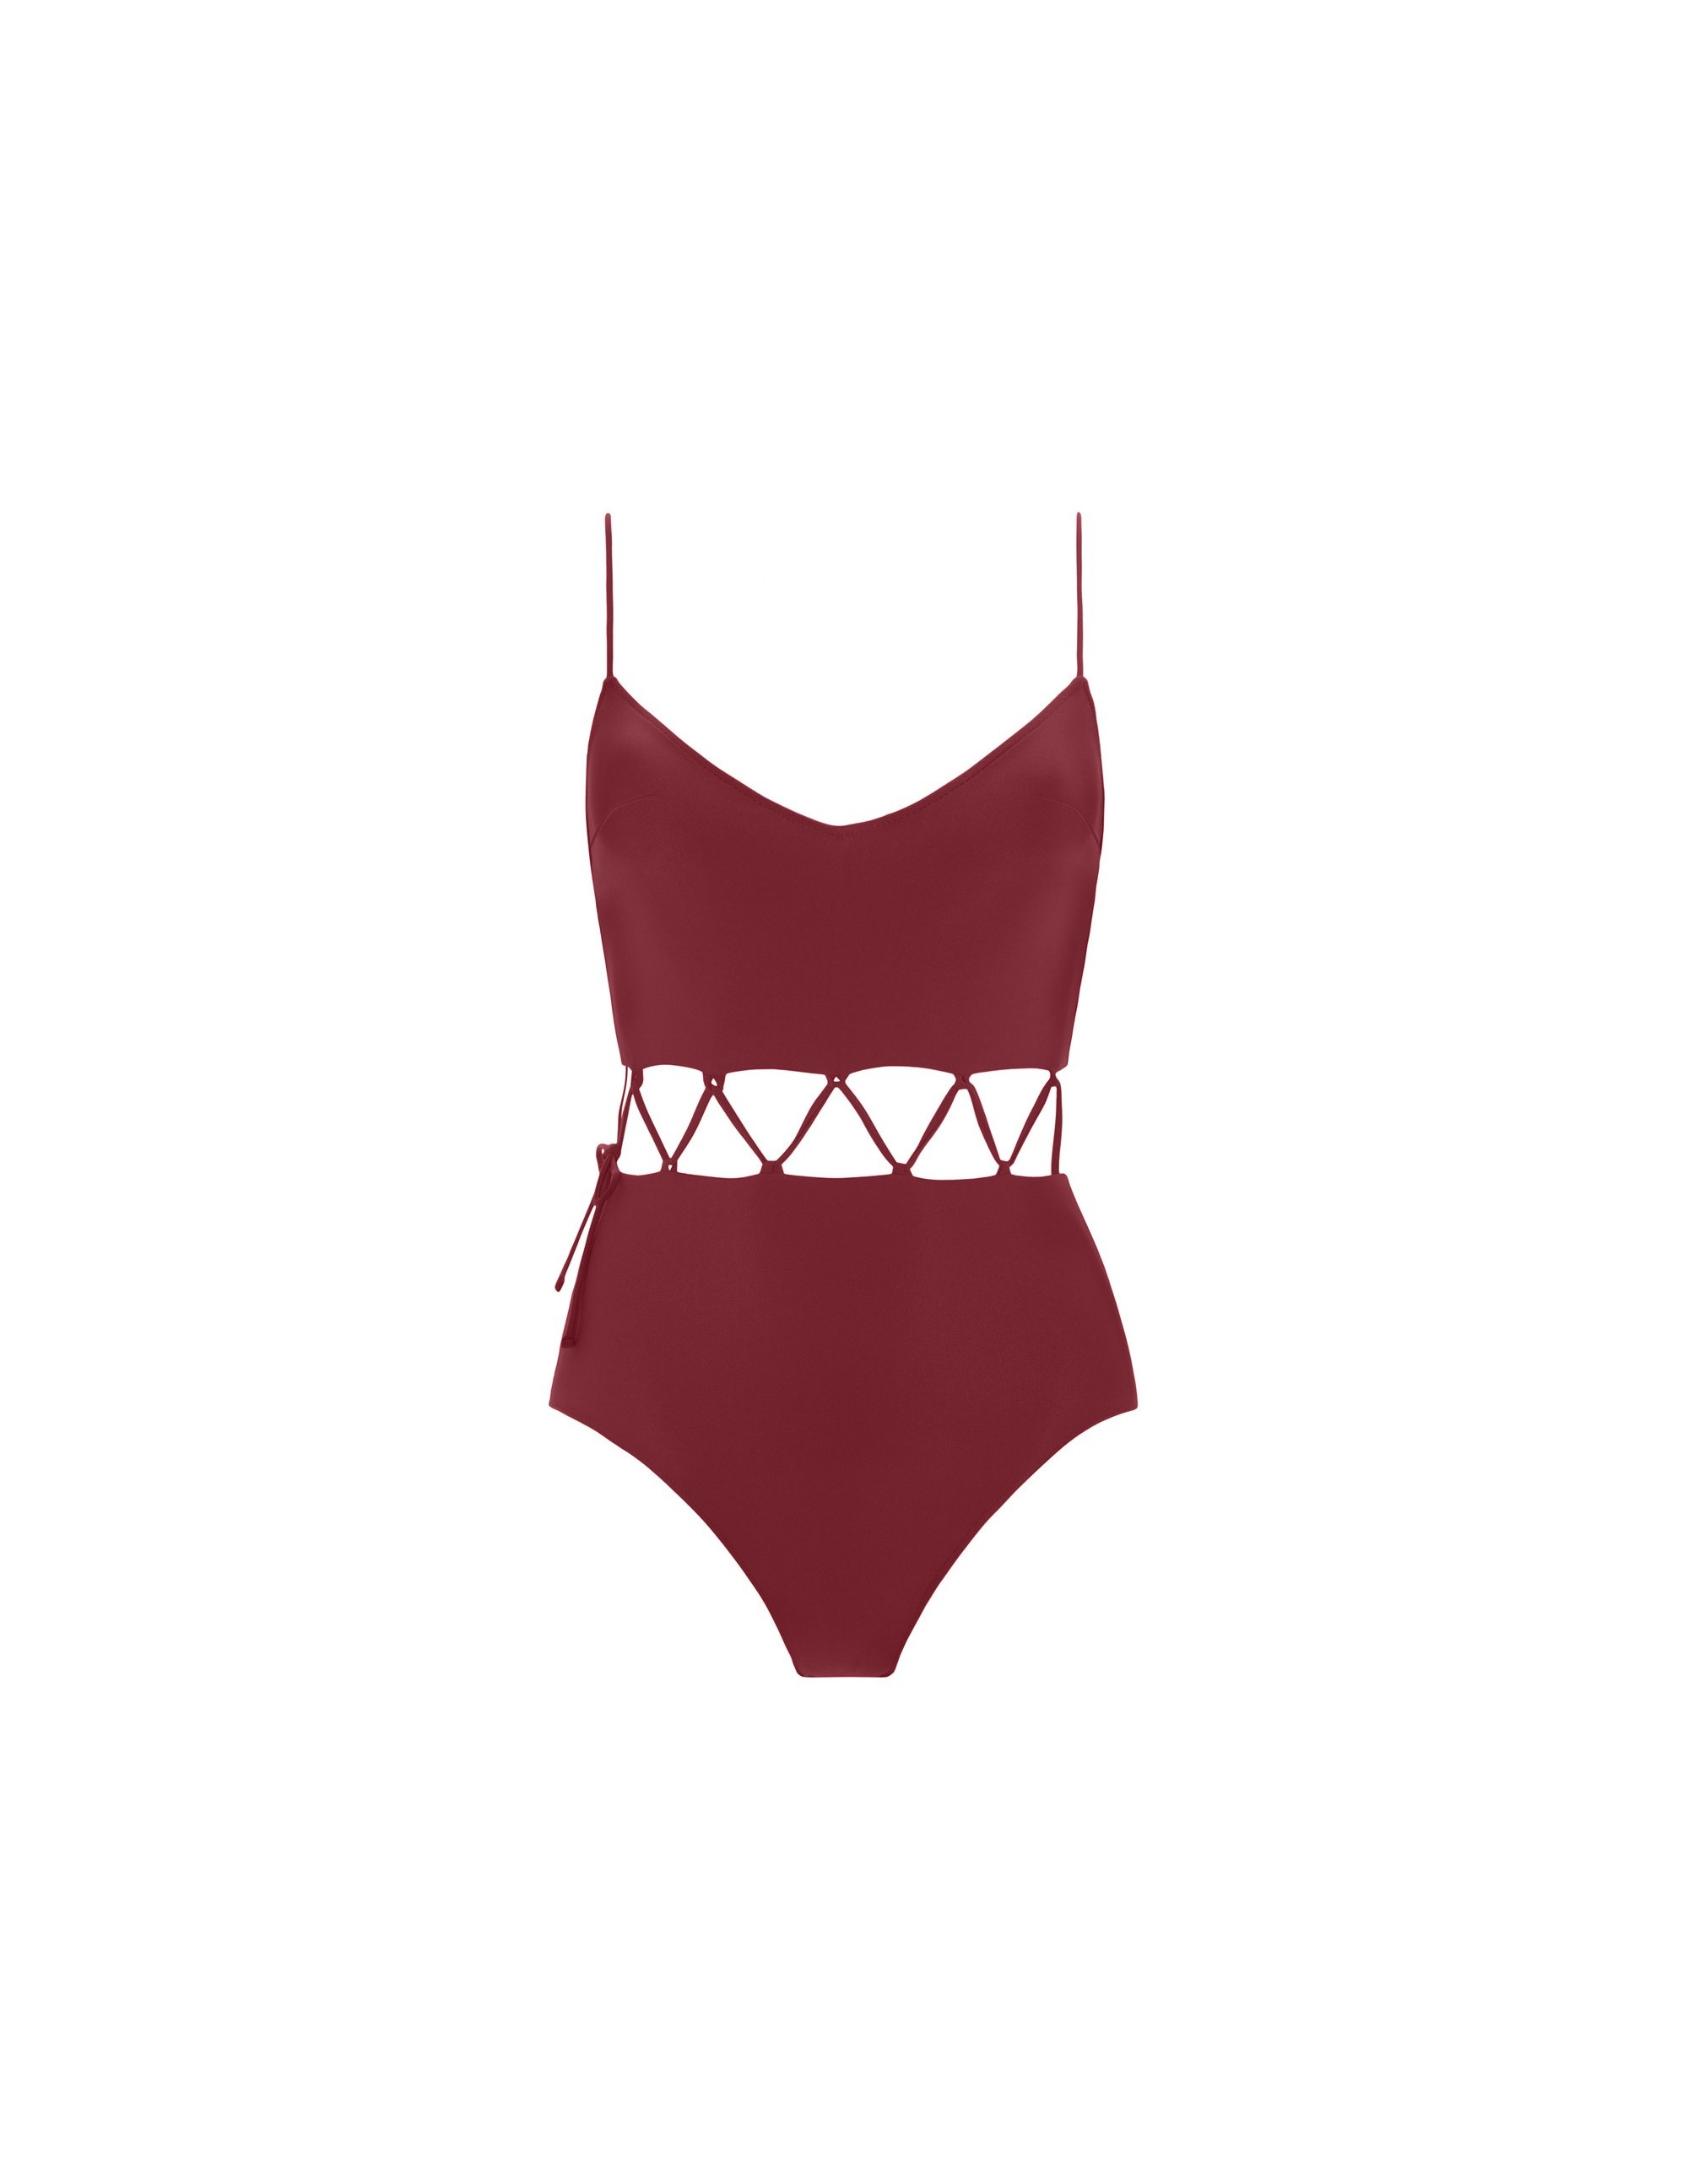 PYLA swimsuit - MASAAI